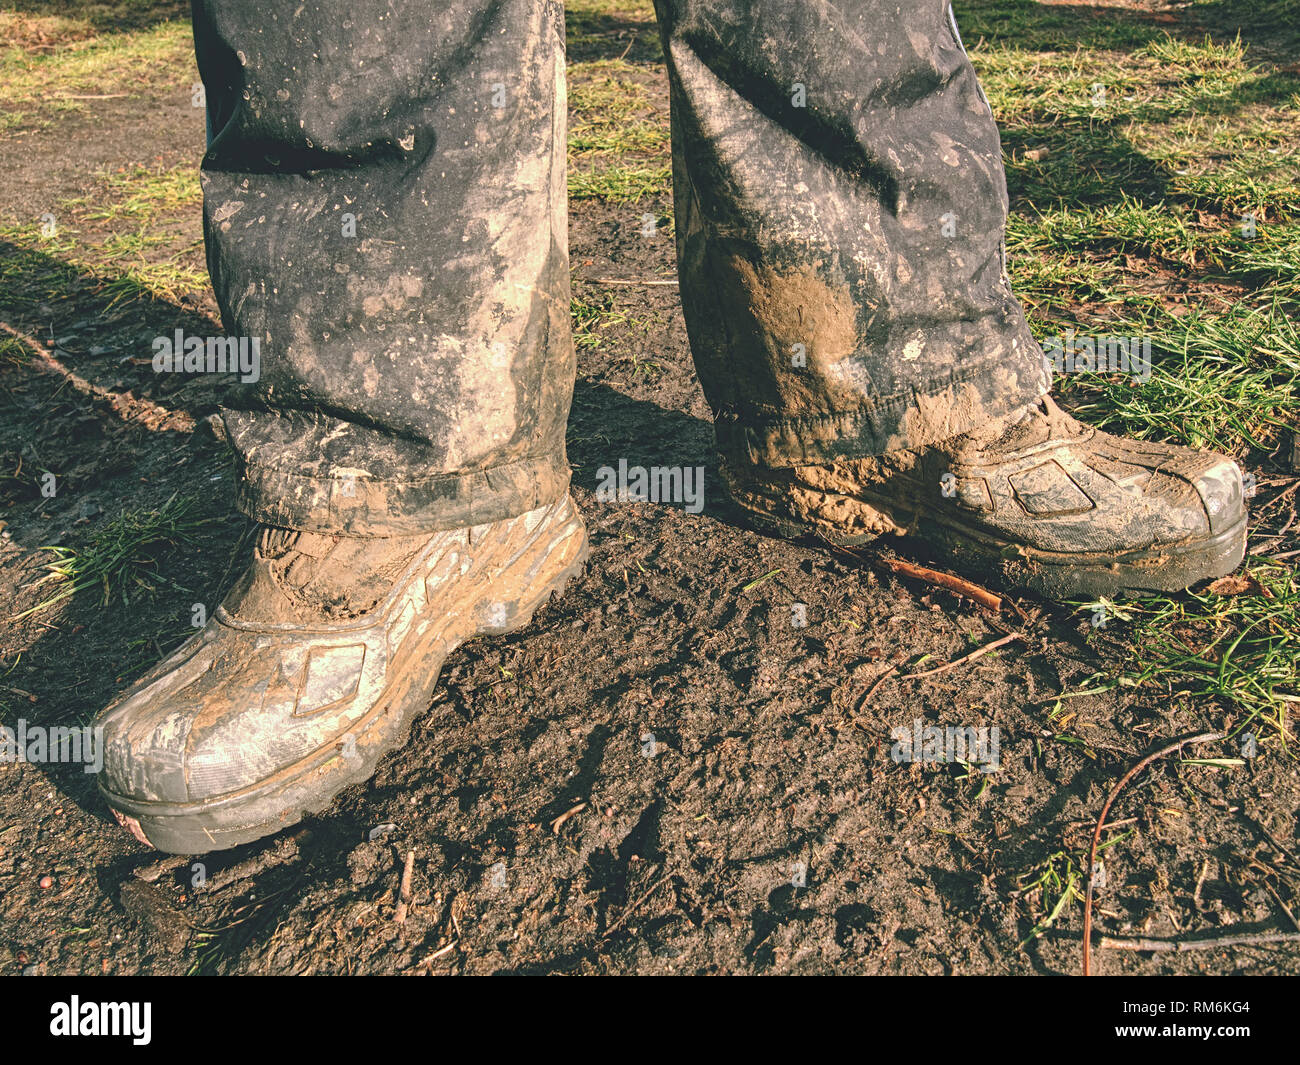 Farmer wearing muddy boots in daily business. Muddy rubber boot in horse farm area Stock Photo